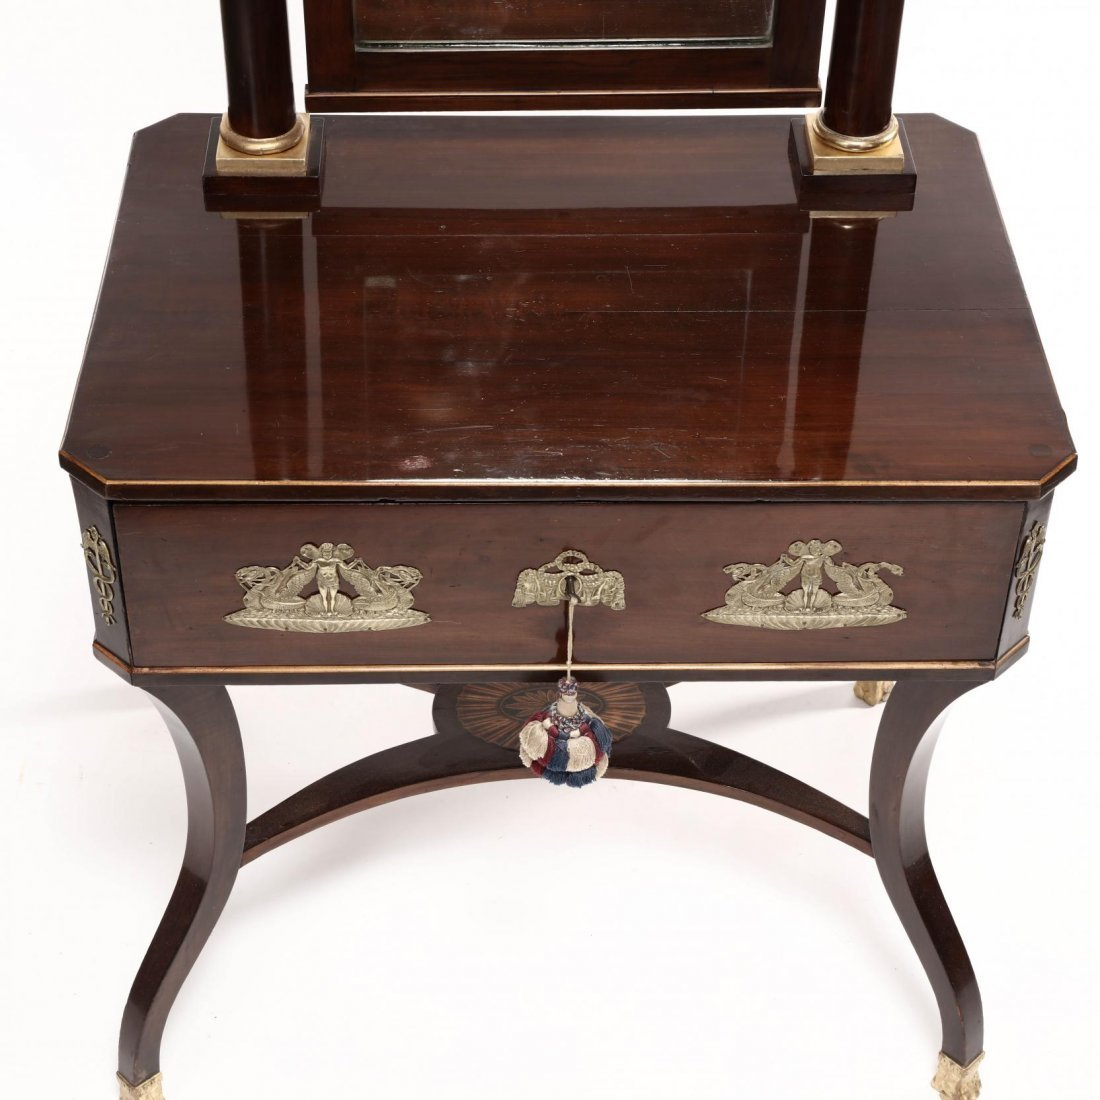 French Classical Revival Dressing Table - 3